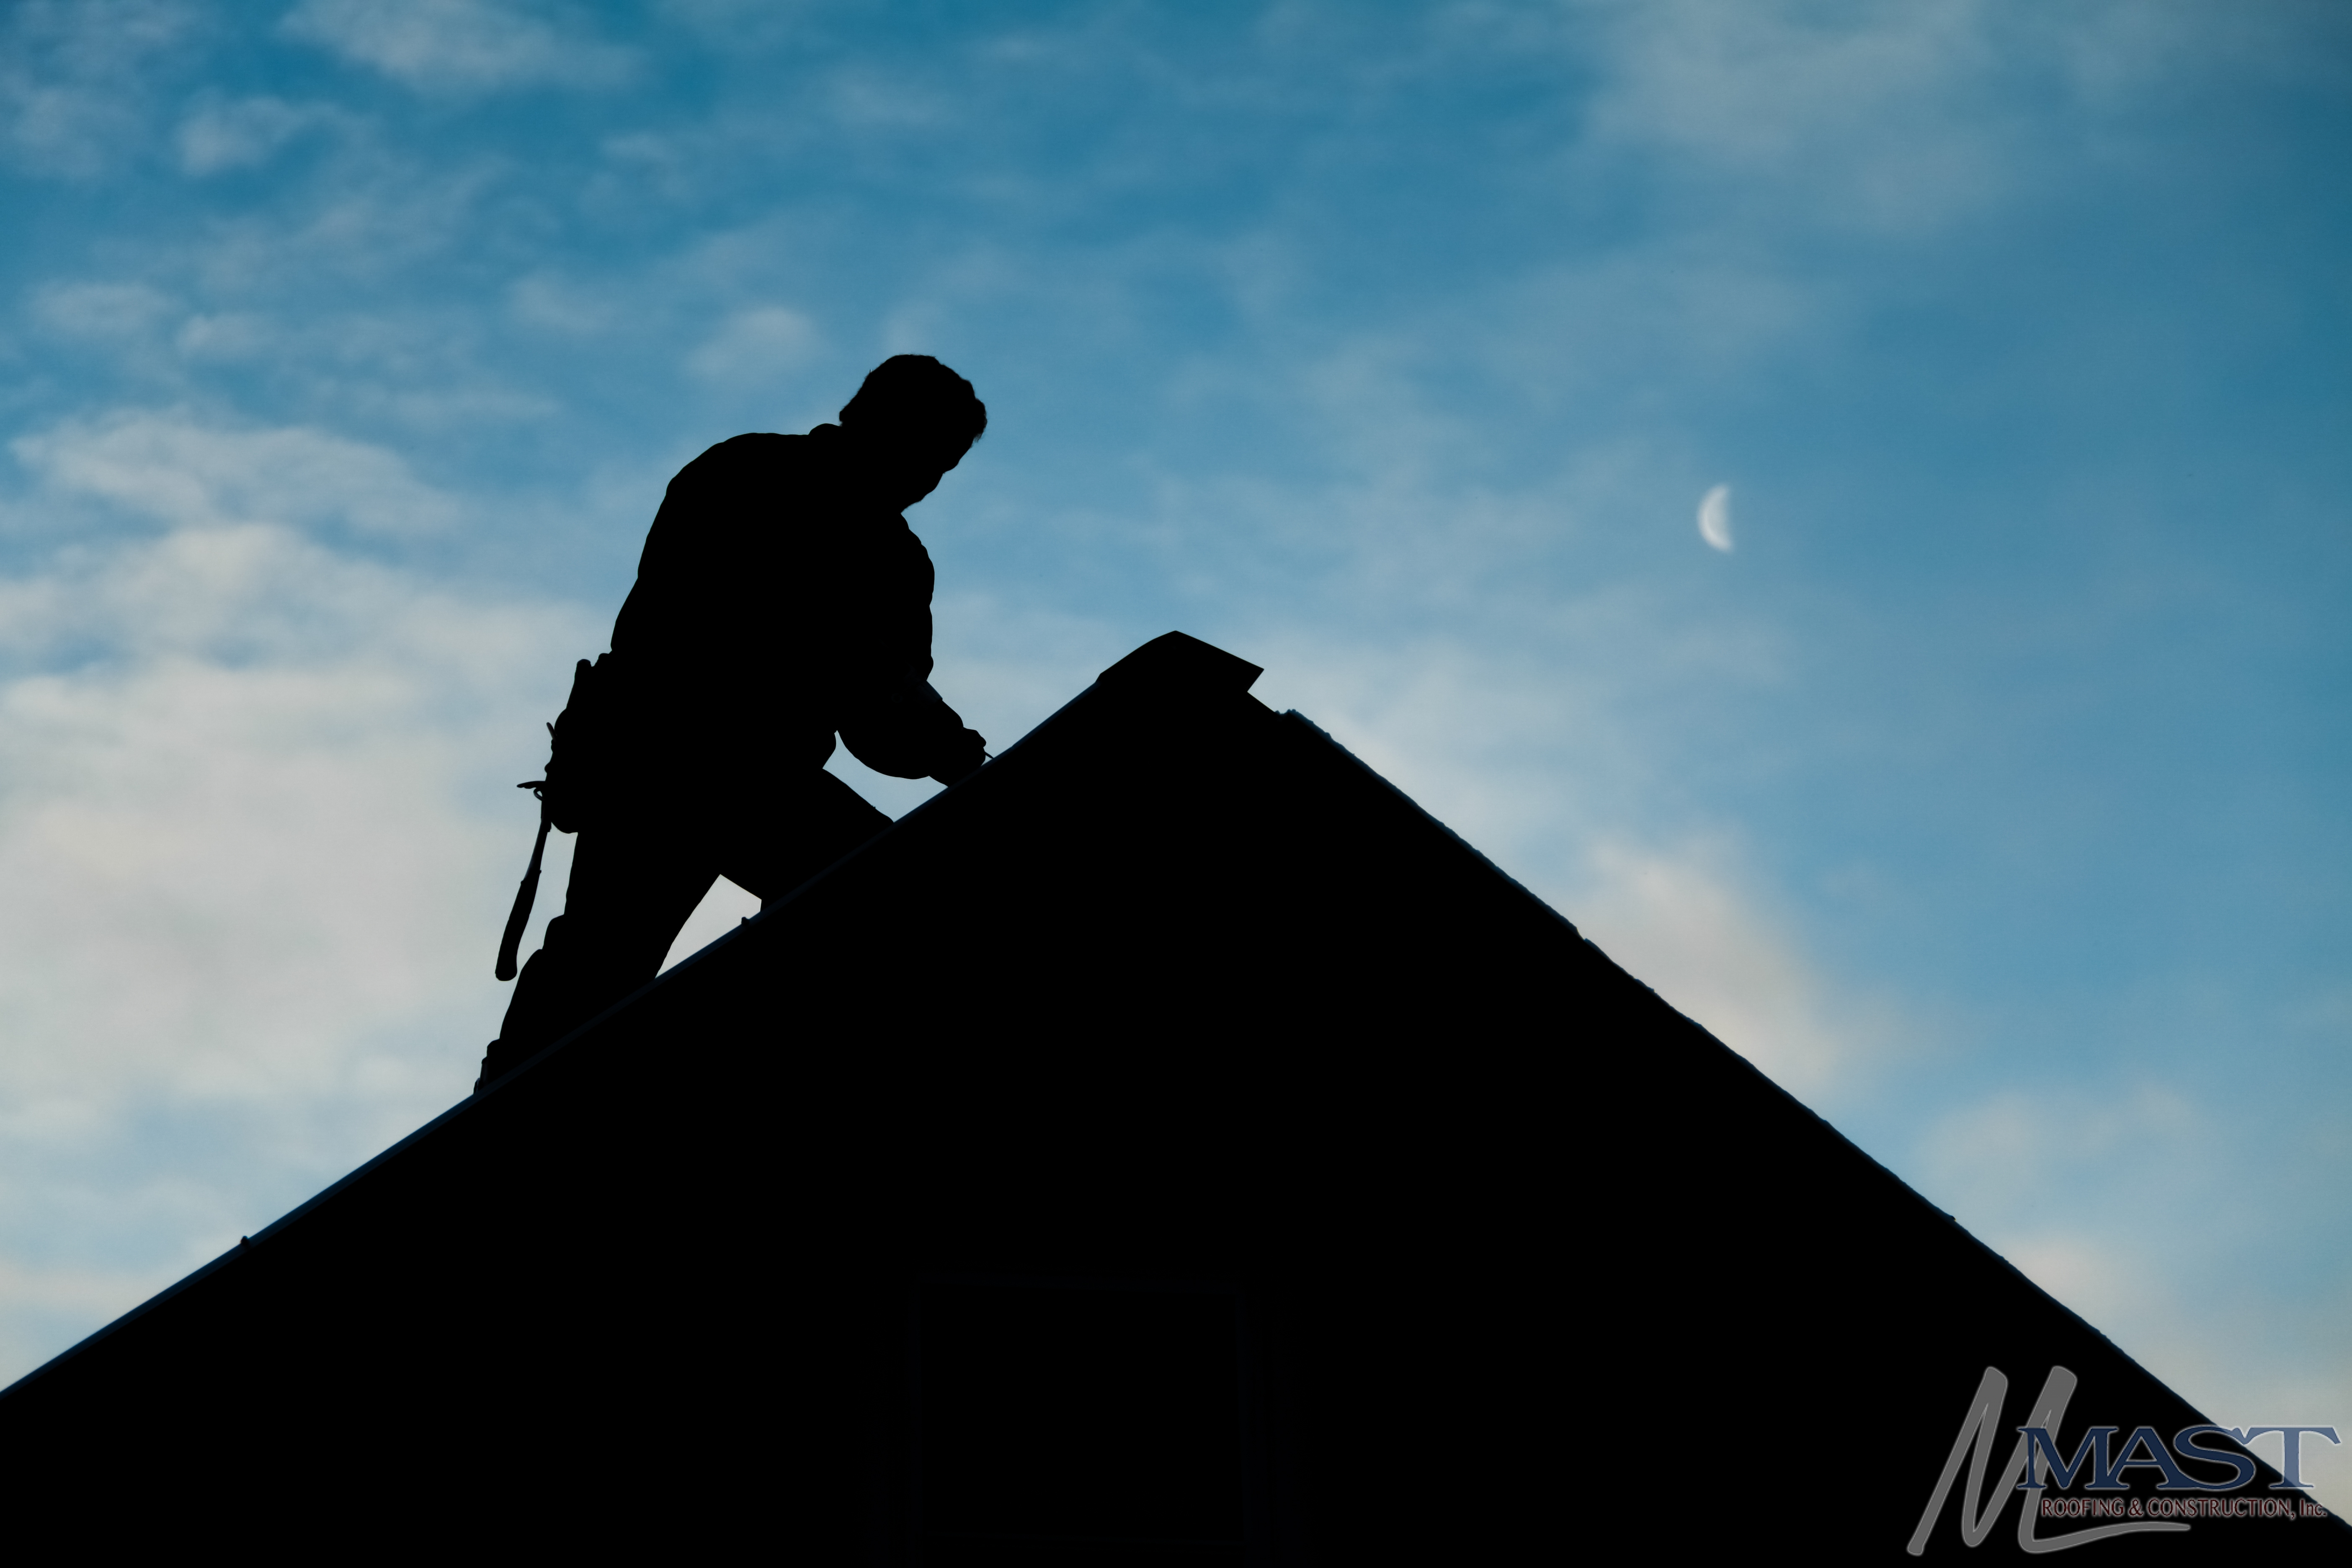 Employment Opportunities with Mast Roofing and Construction